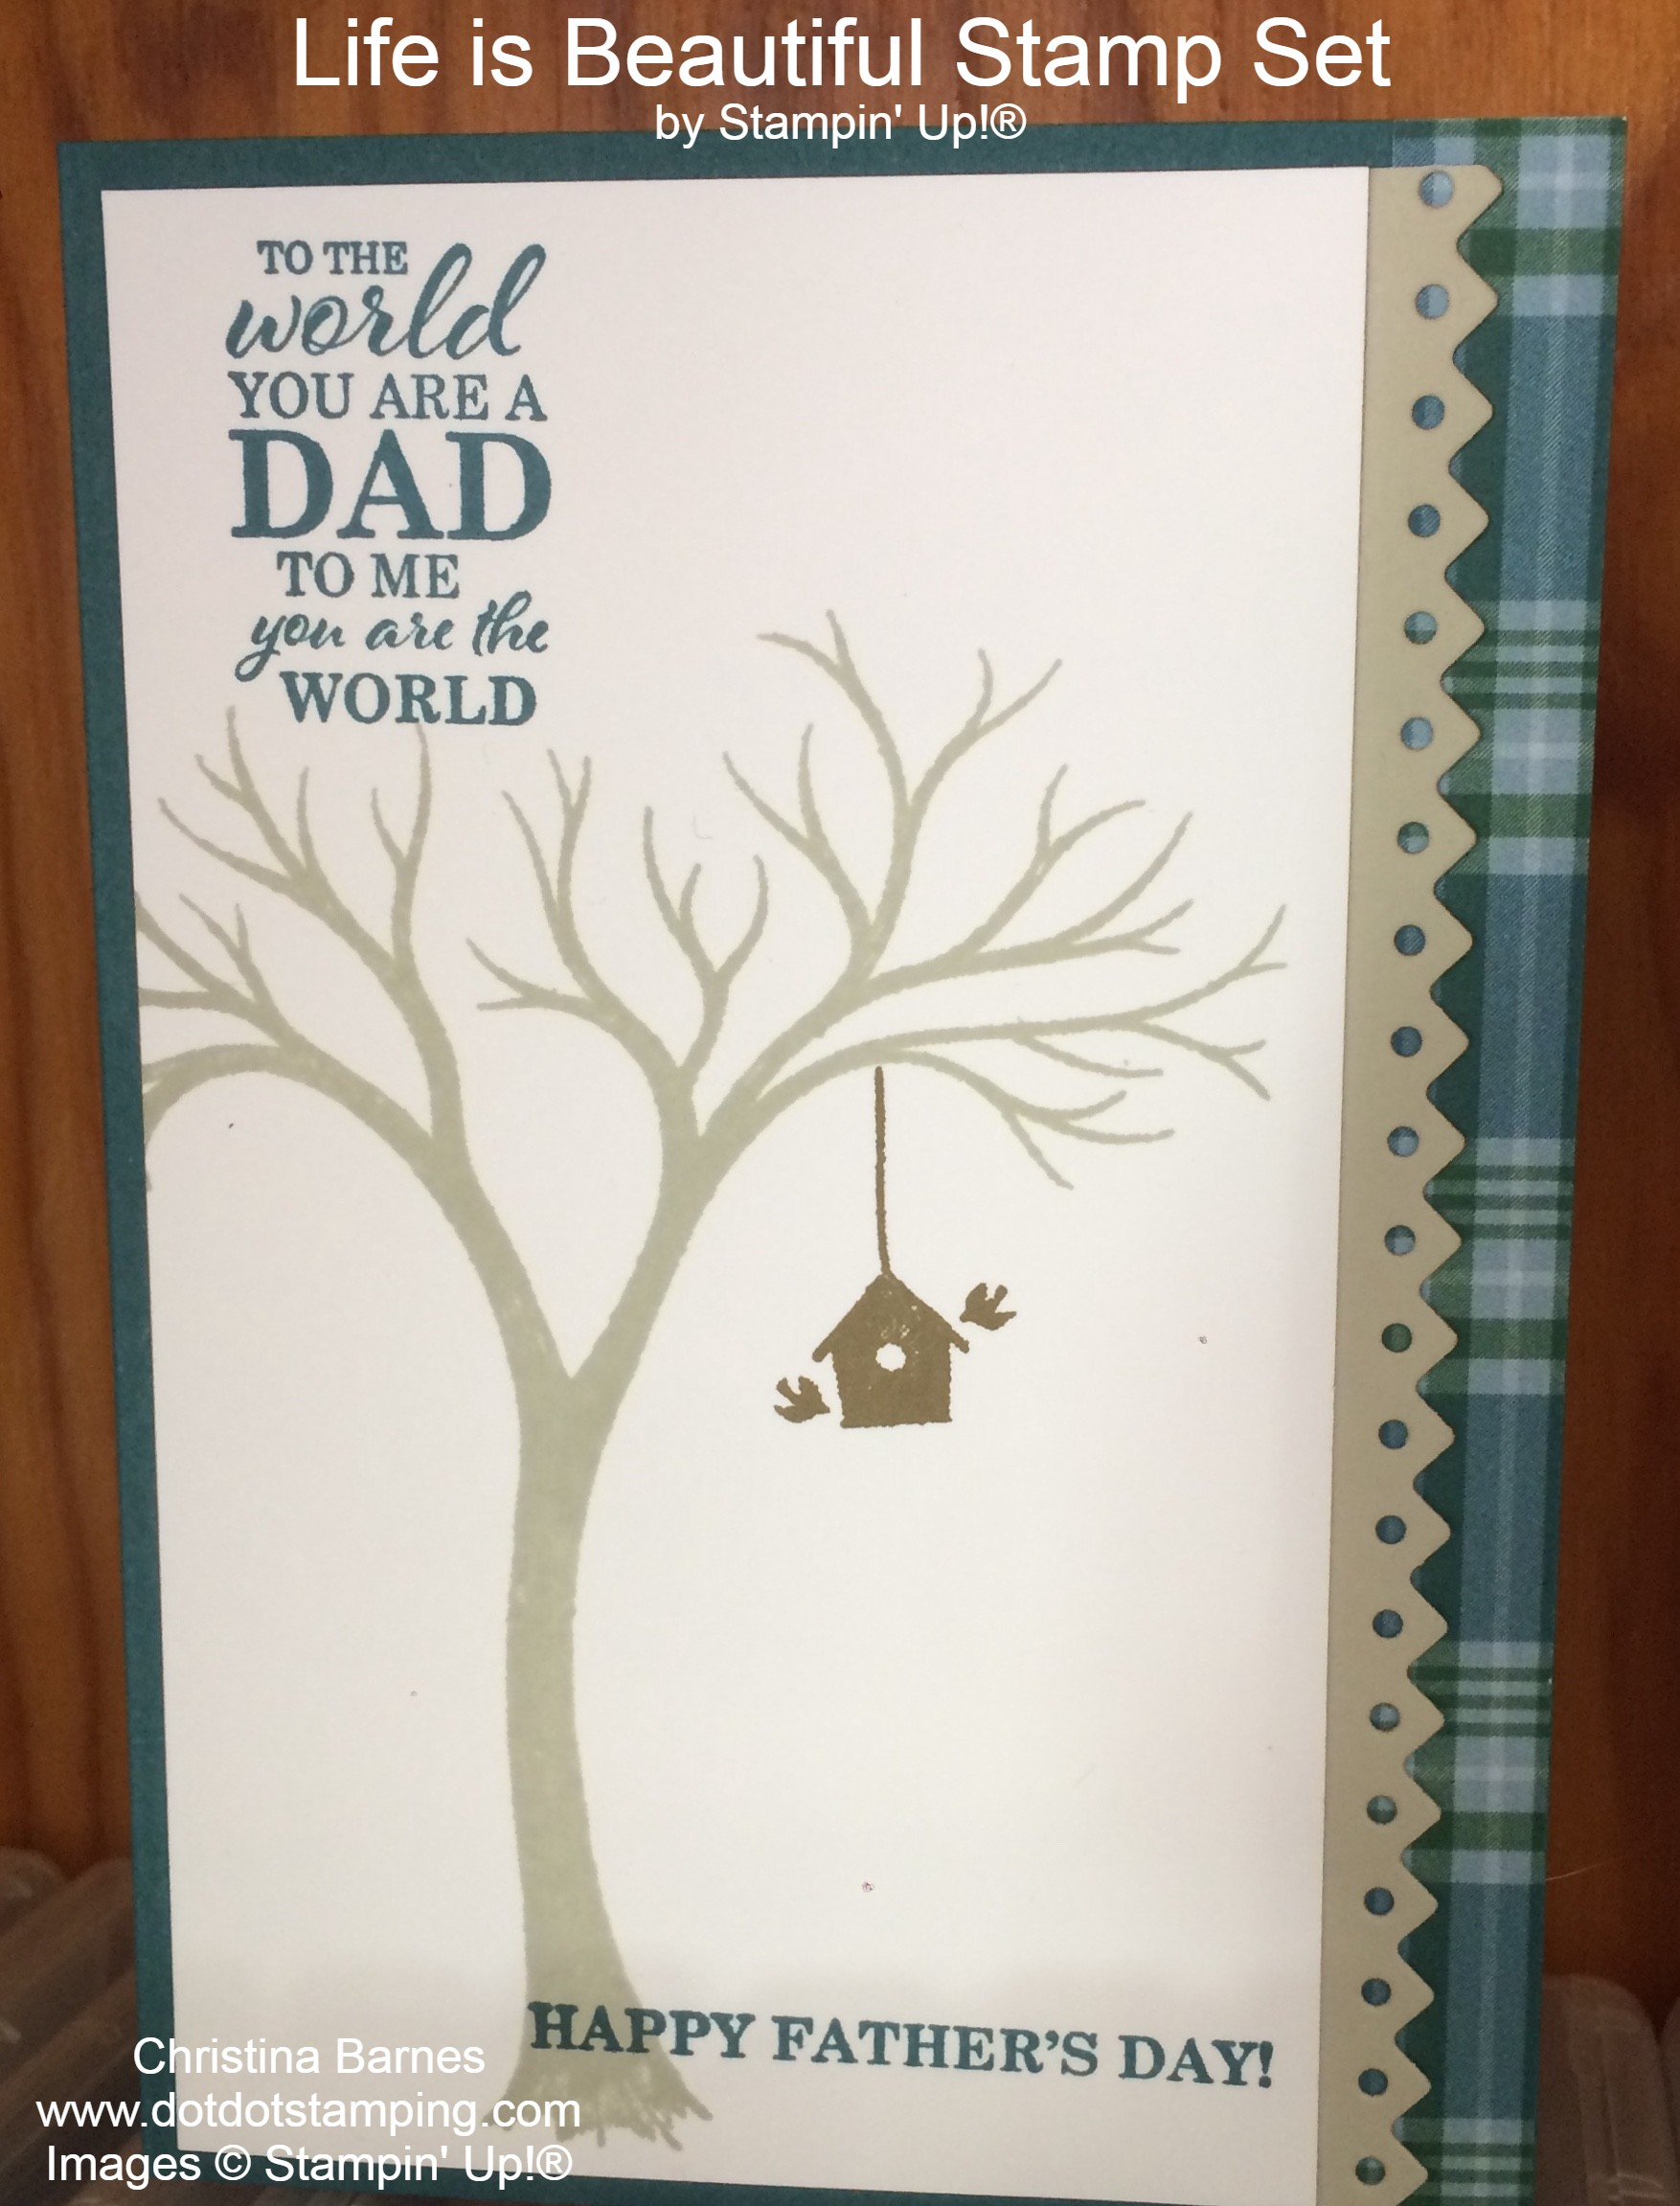 Life is Beautiful Father's Day Card 2020 Plaid Tidings Stampin' Up! Christina Barnes Dot Dot Stamping